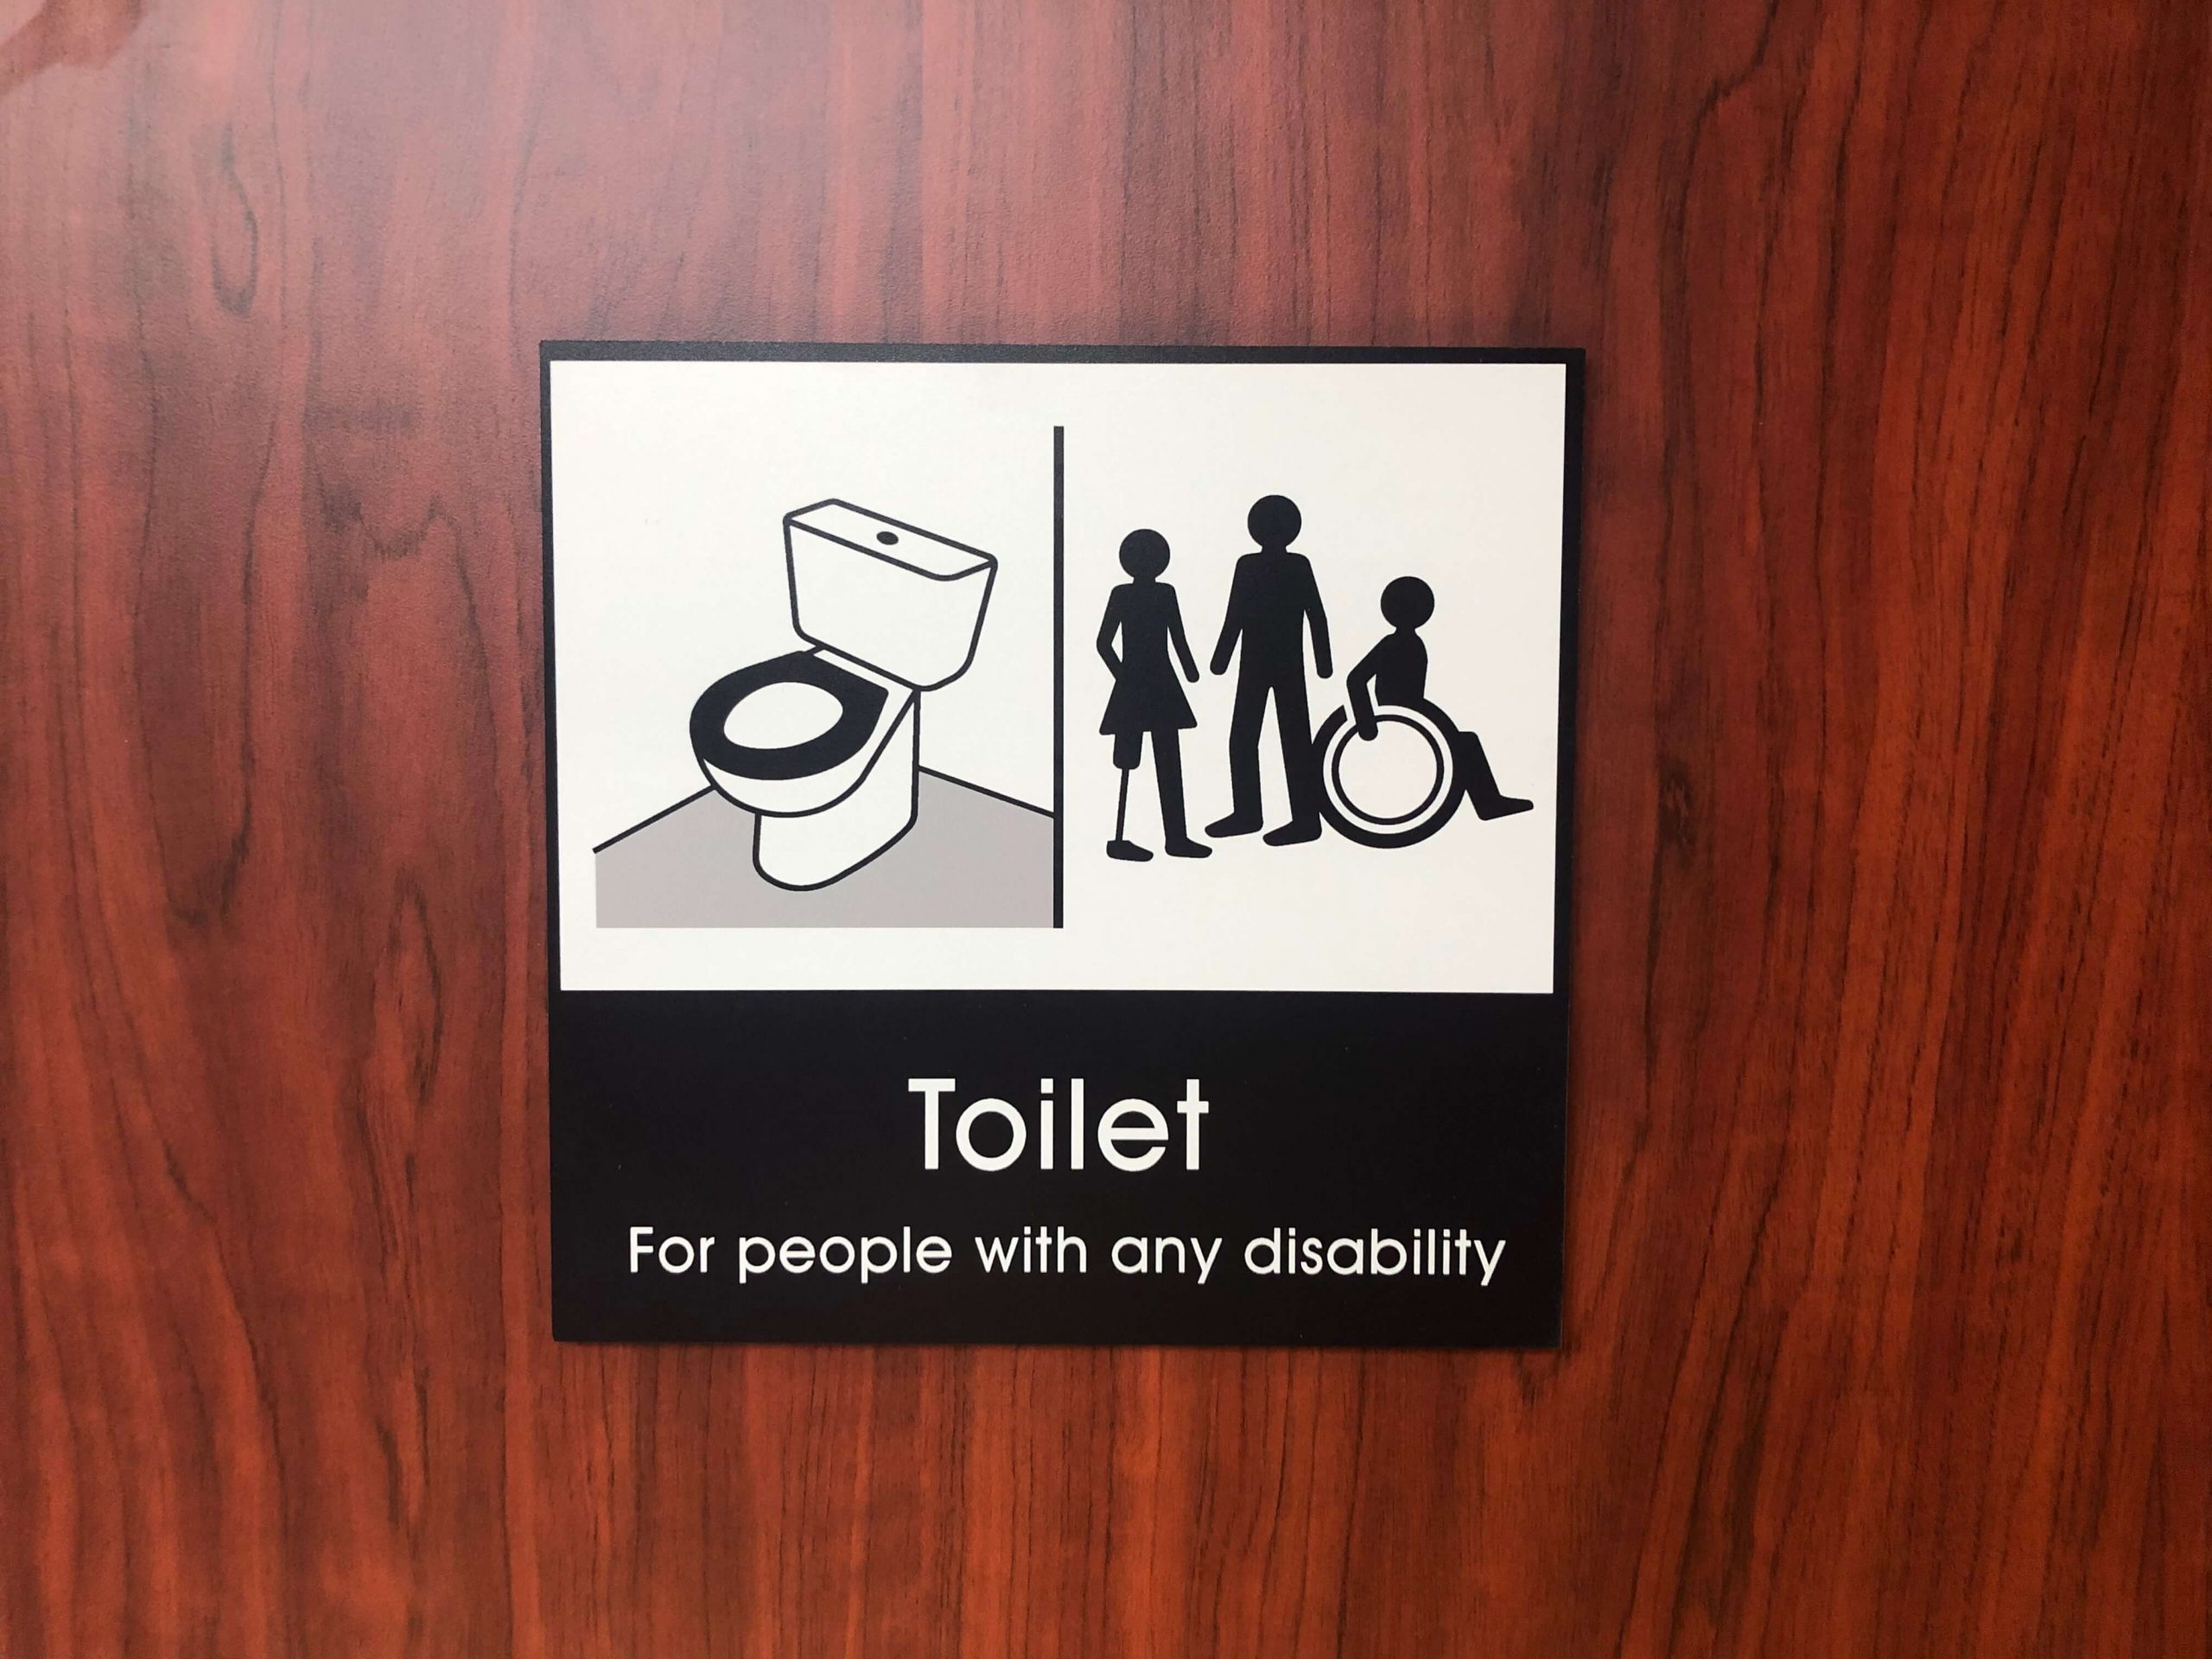 Dementia-friendly toilet signs at Alnwick Playhouse